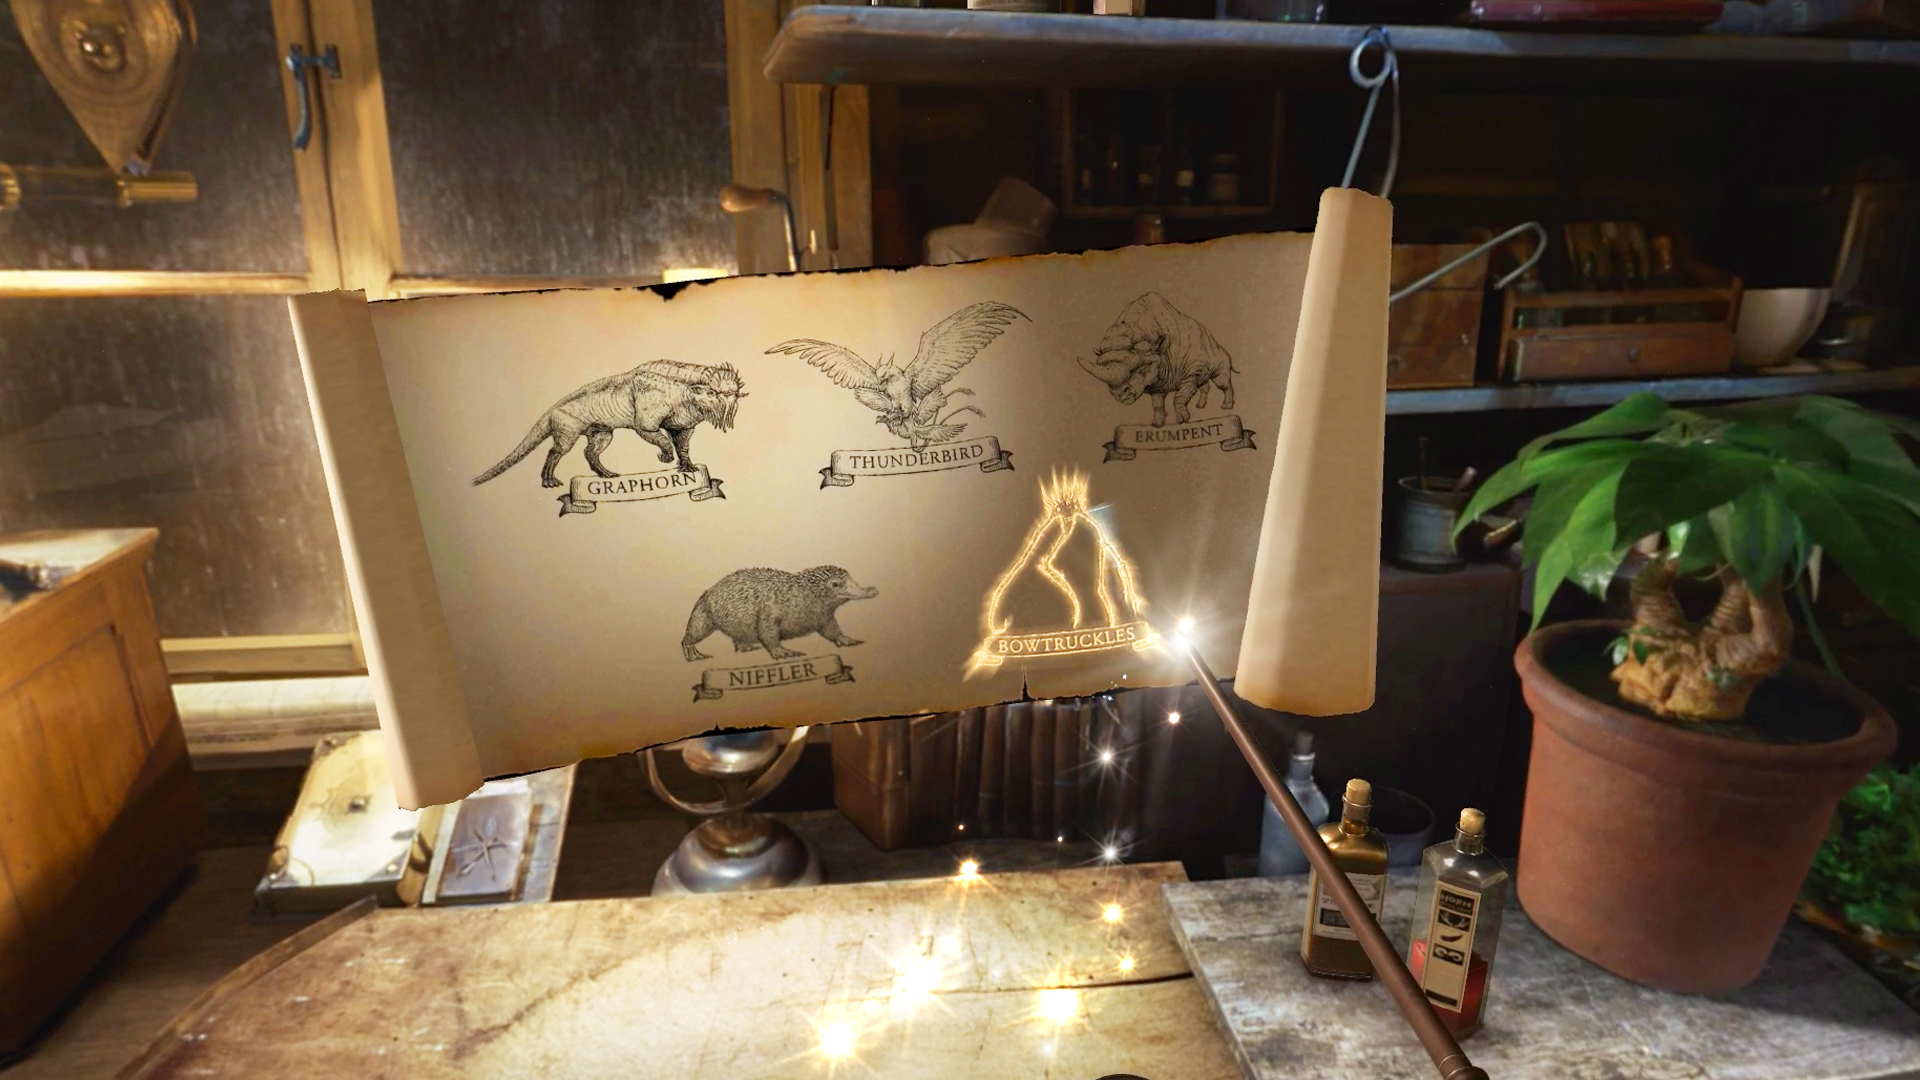 WB VR Fantastic Beasts VR screenshot scroll sketches 1920x1080 300dpi 04